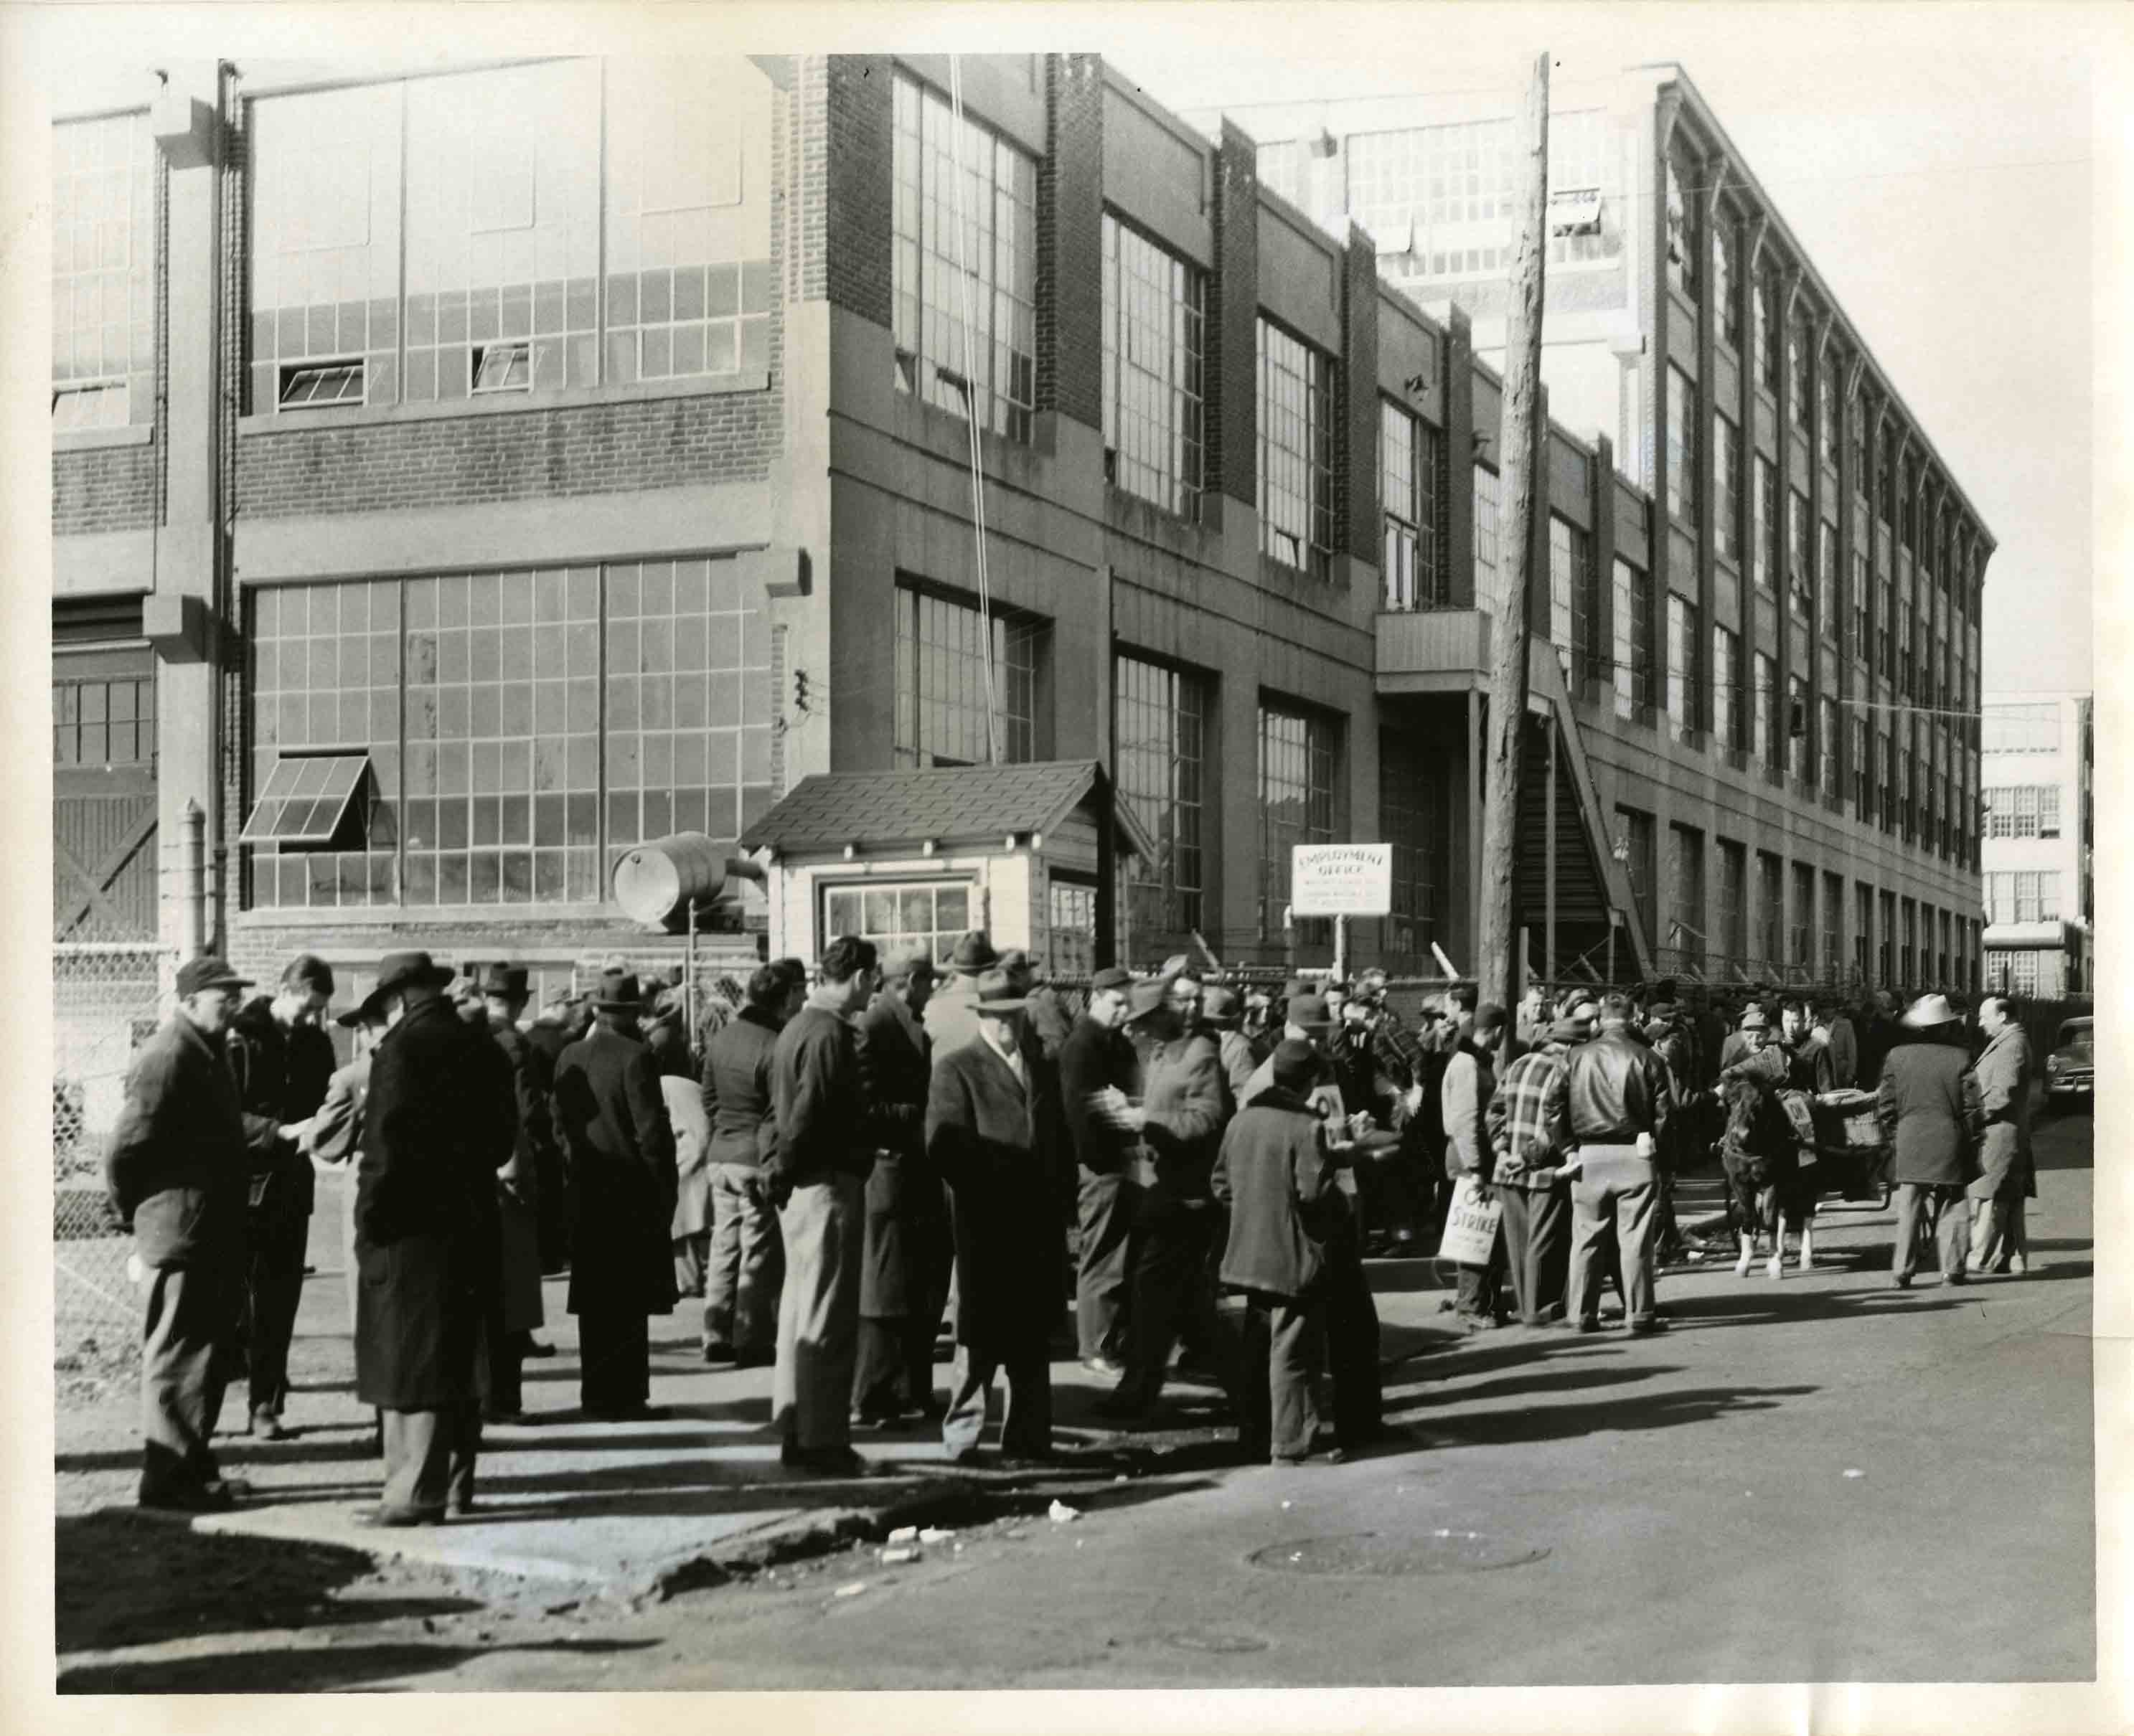 Striking workers of the Hansen & Whitney Local 295, date unknown, from the James A. Ingalls Papers